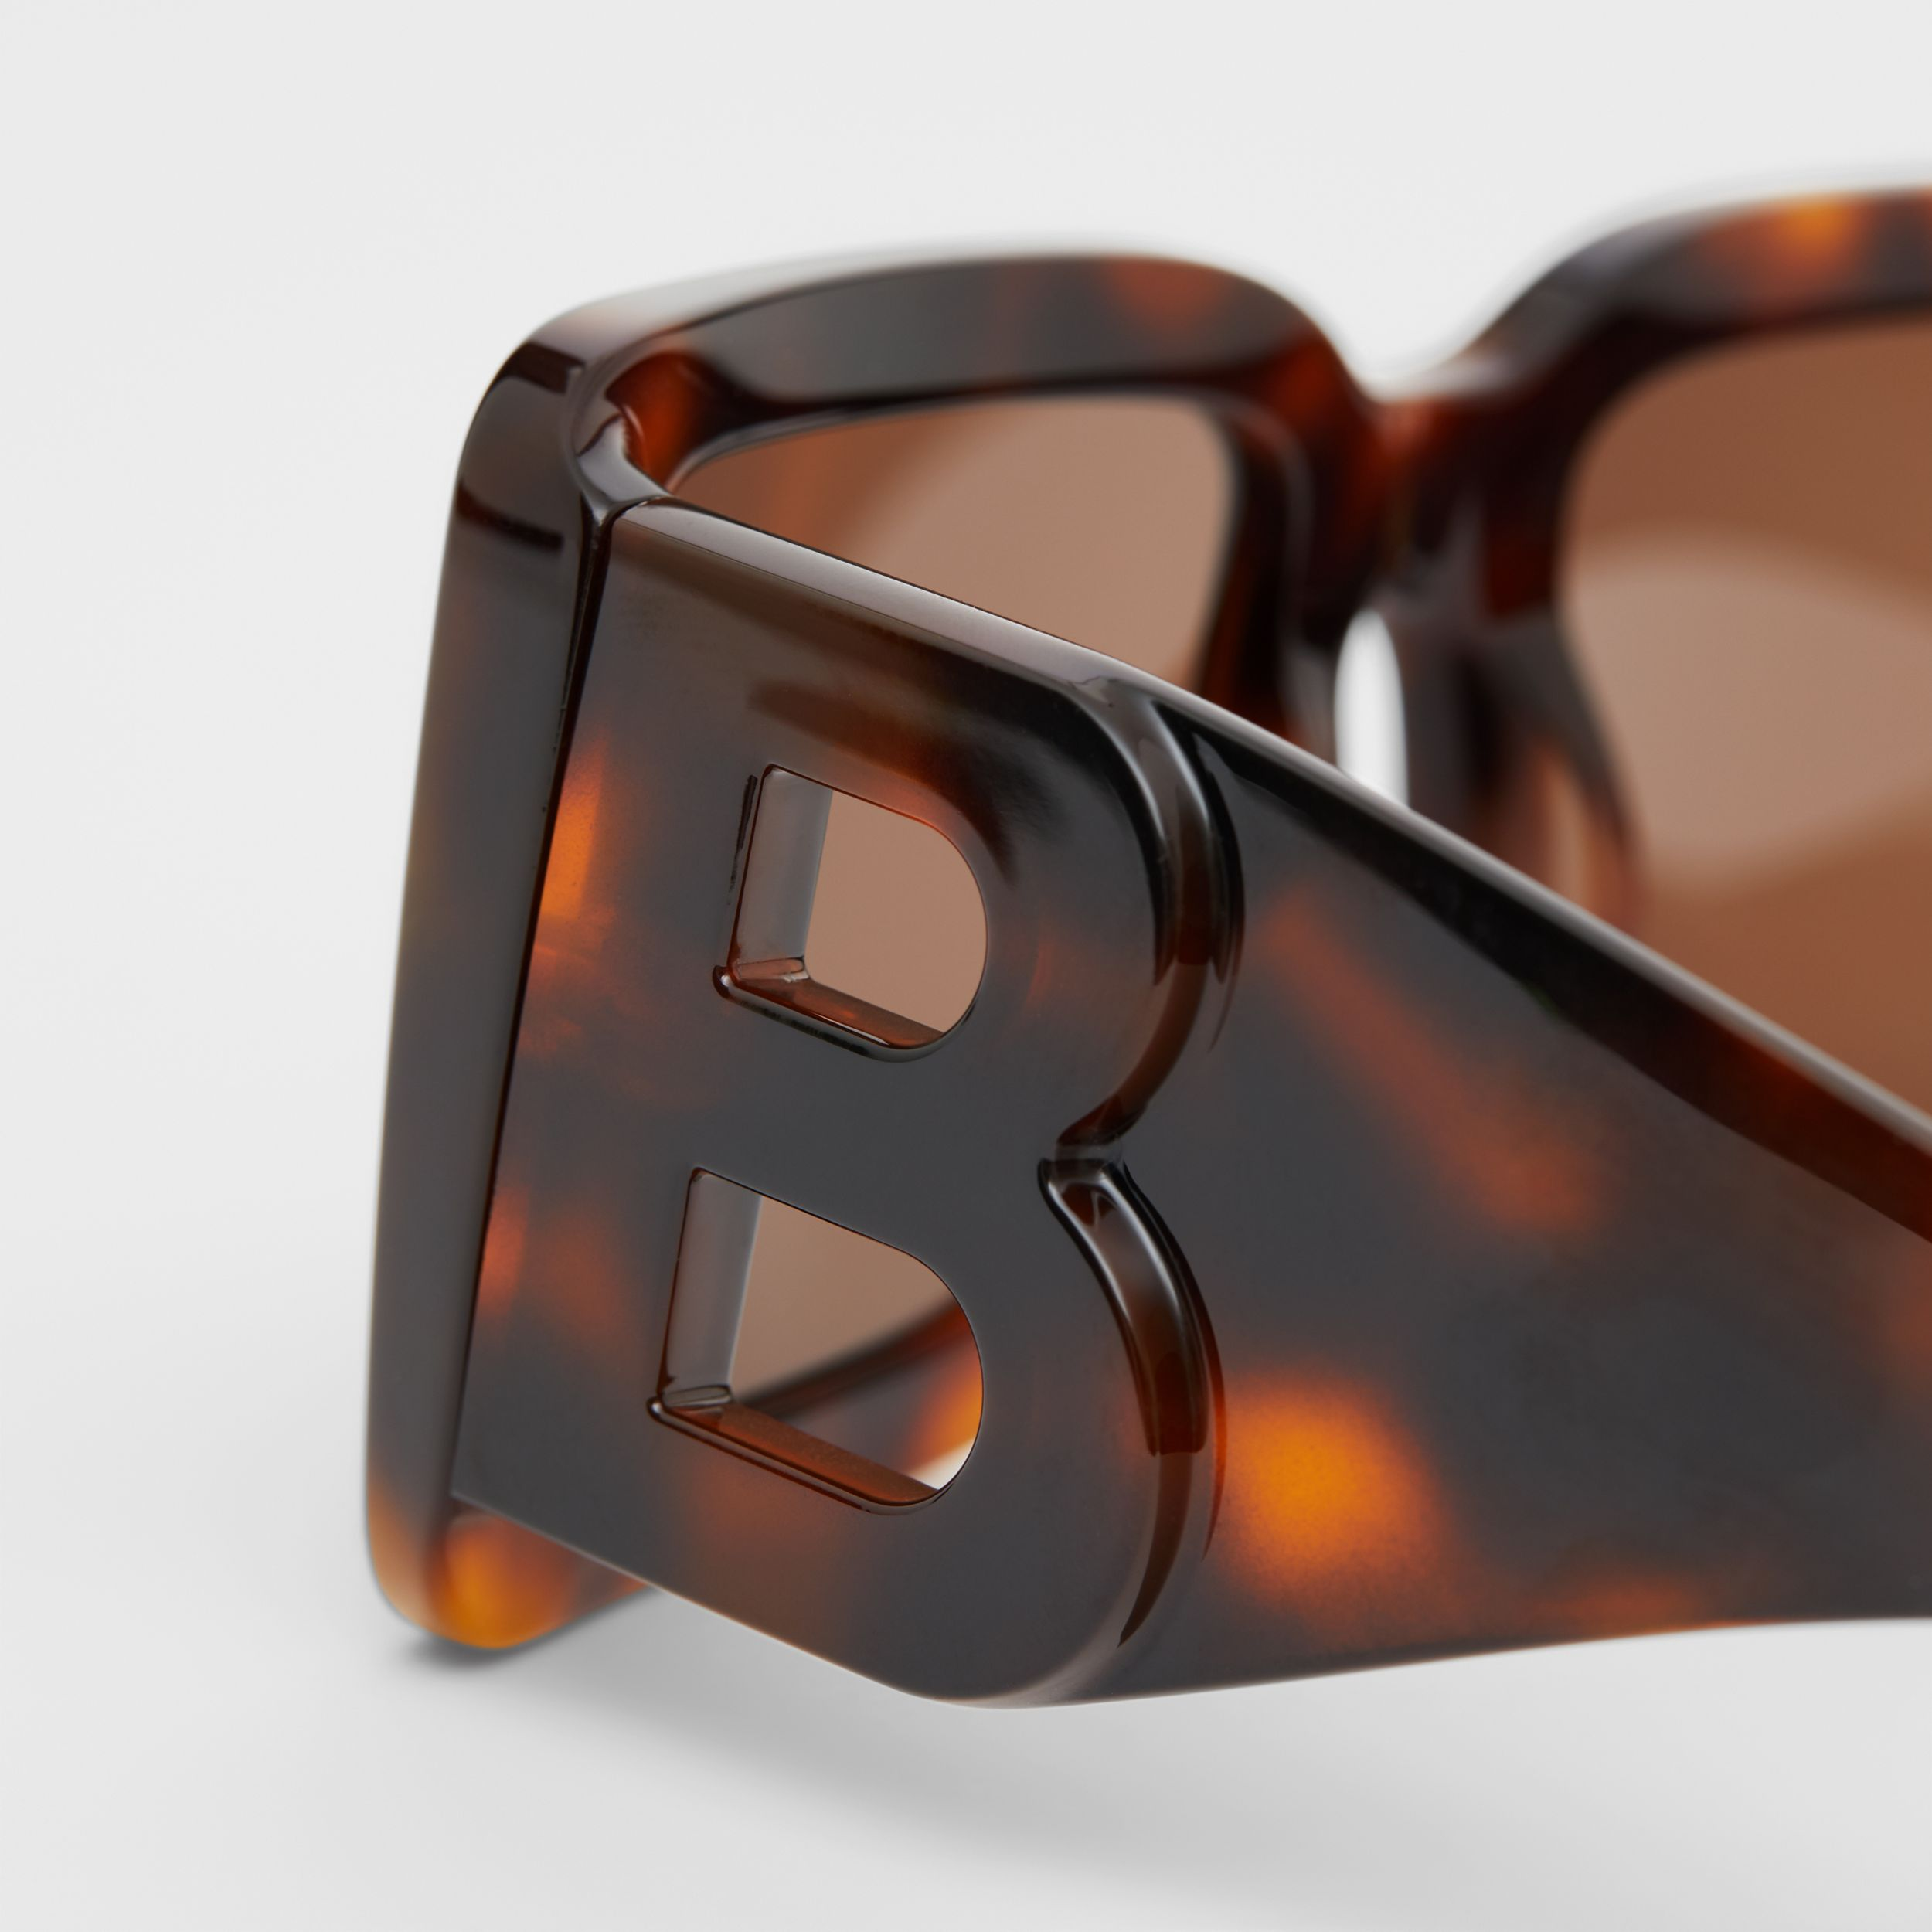 B Motif Square Frame Sunglasses in Tortoise Amber - Women | Burberry Hong Kong S.A.R. - 2